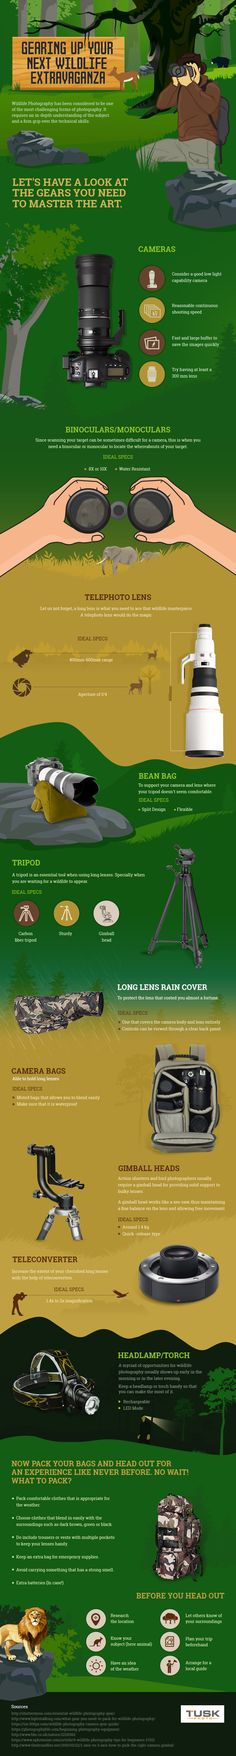 This handy infographic from Tusk is perfect for those who are into photography and want to up their wildlife photography game.  Find out exactly what photography equipment youll need to stand the best chance of capturing stunning wildlife shots.  Save  The post Photography Gear For Your Next Wildlife Adventure appeared first on Camping with Style Camping Blog | Activities  Glamping  Travel  Adventure.